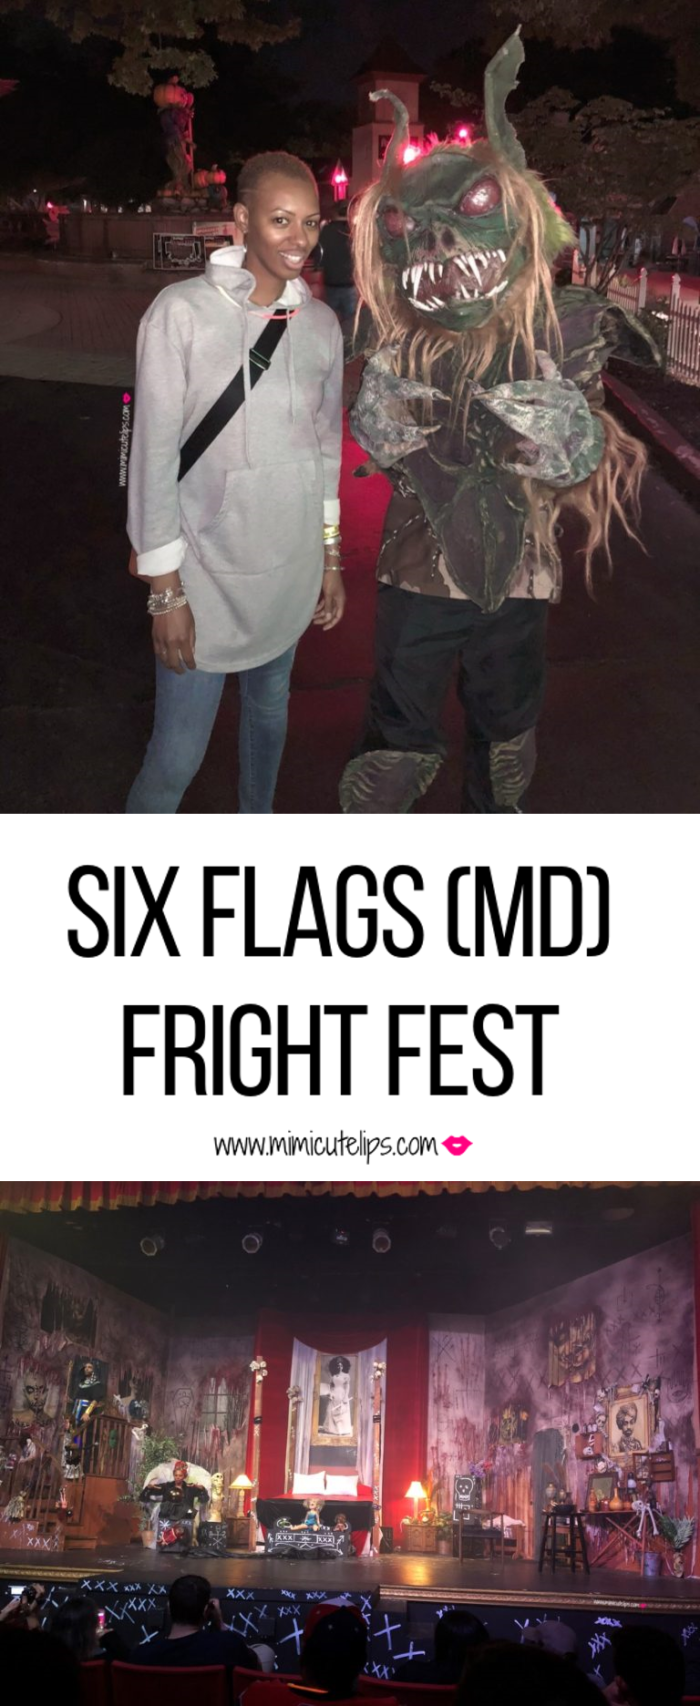 Lifestyle Media Correspondent MimiCuteLips gives a preview of the Six Flags Fright Fest during their media preview night. #SFA #FrightFest #SixFlags